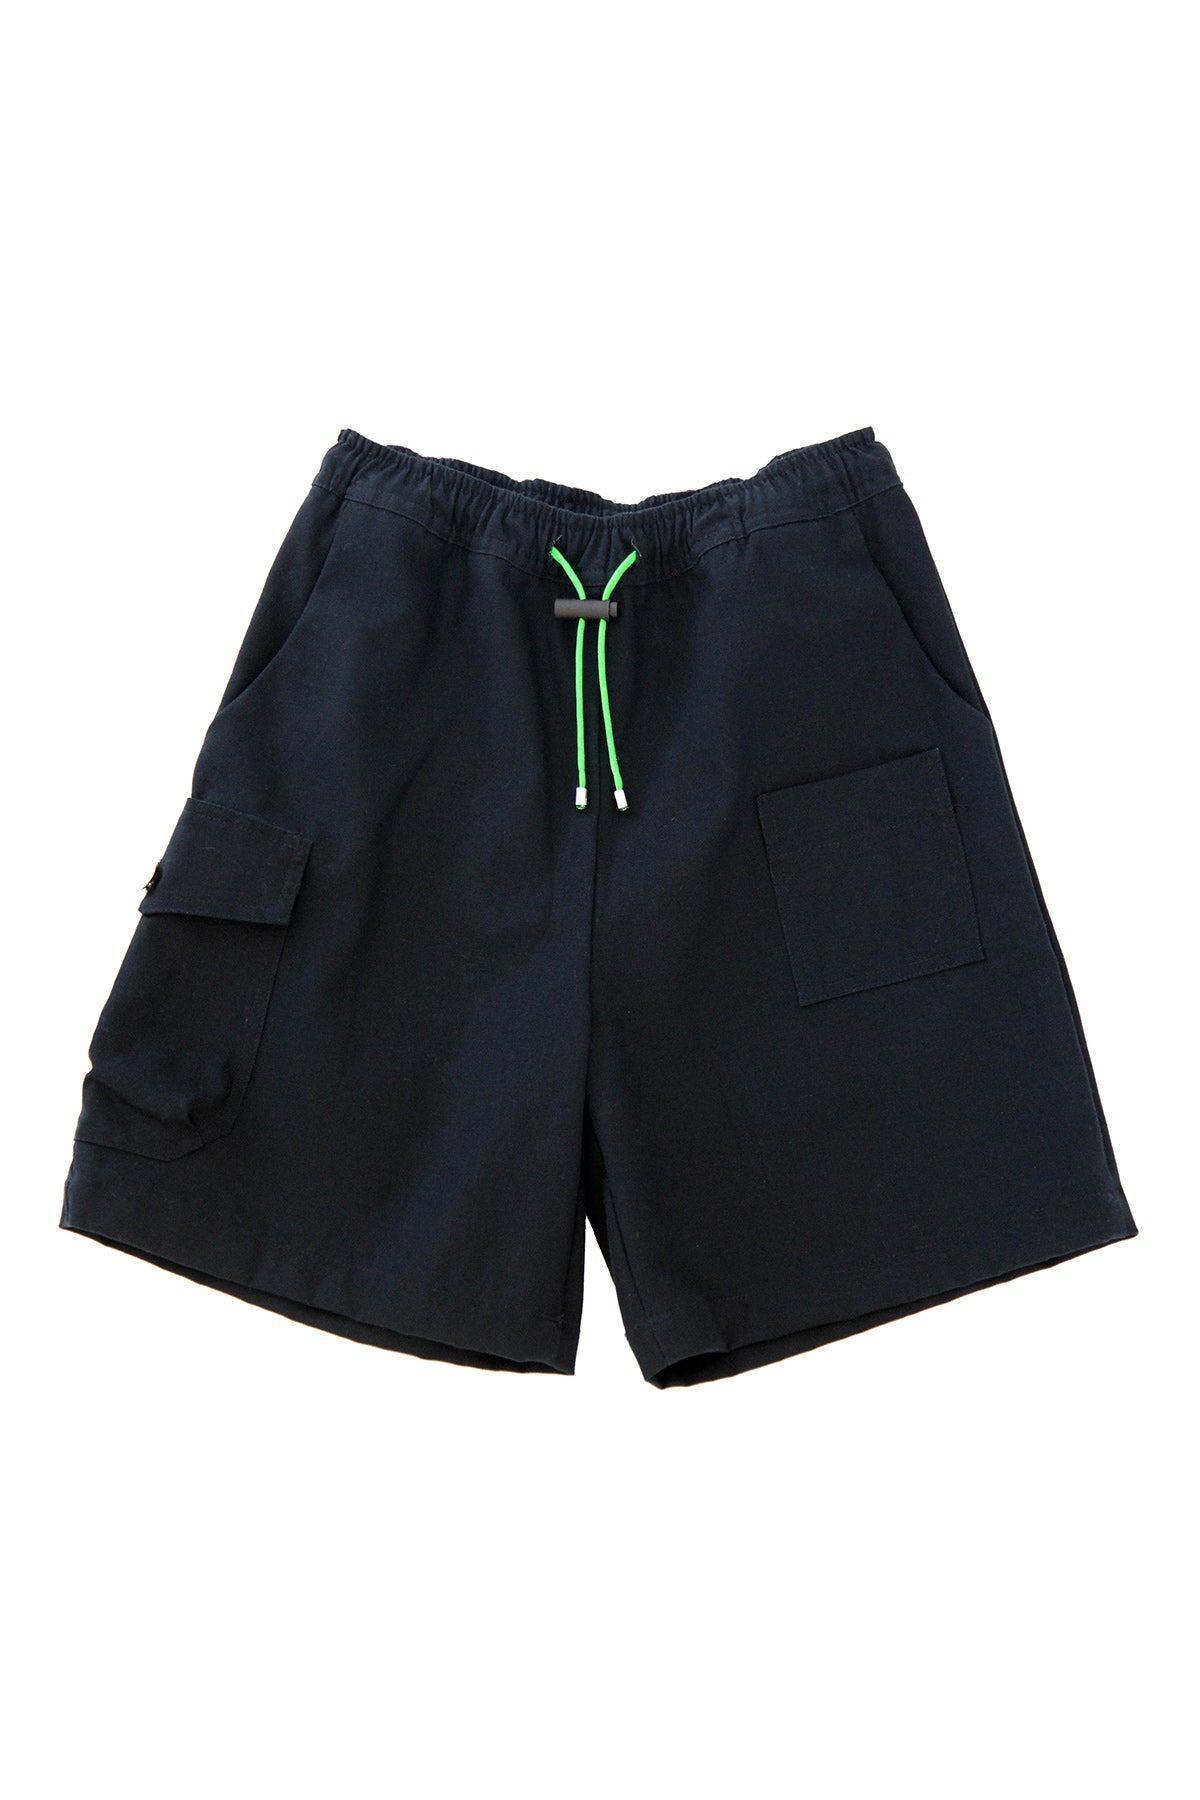 Camp Short in Black